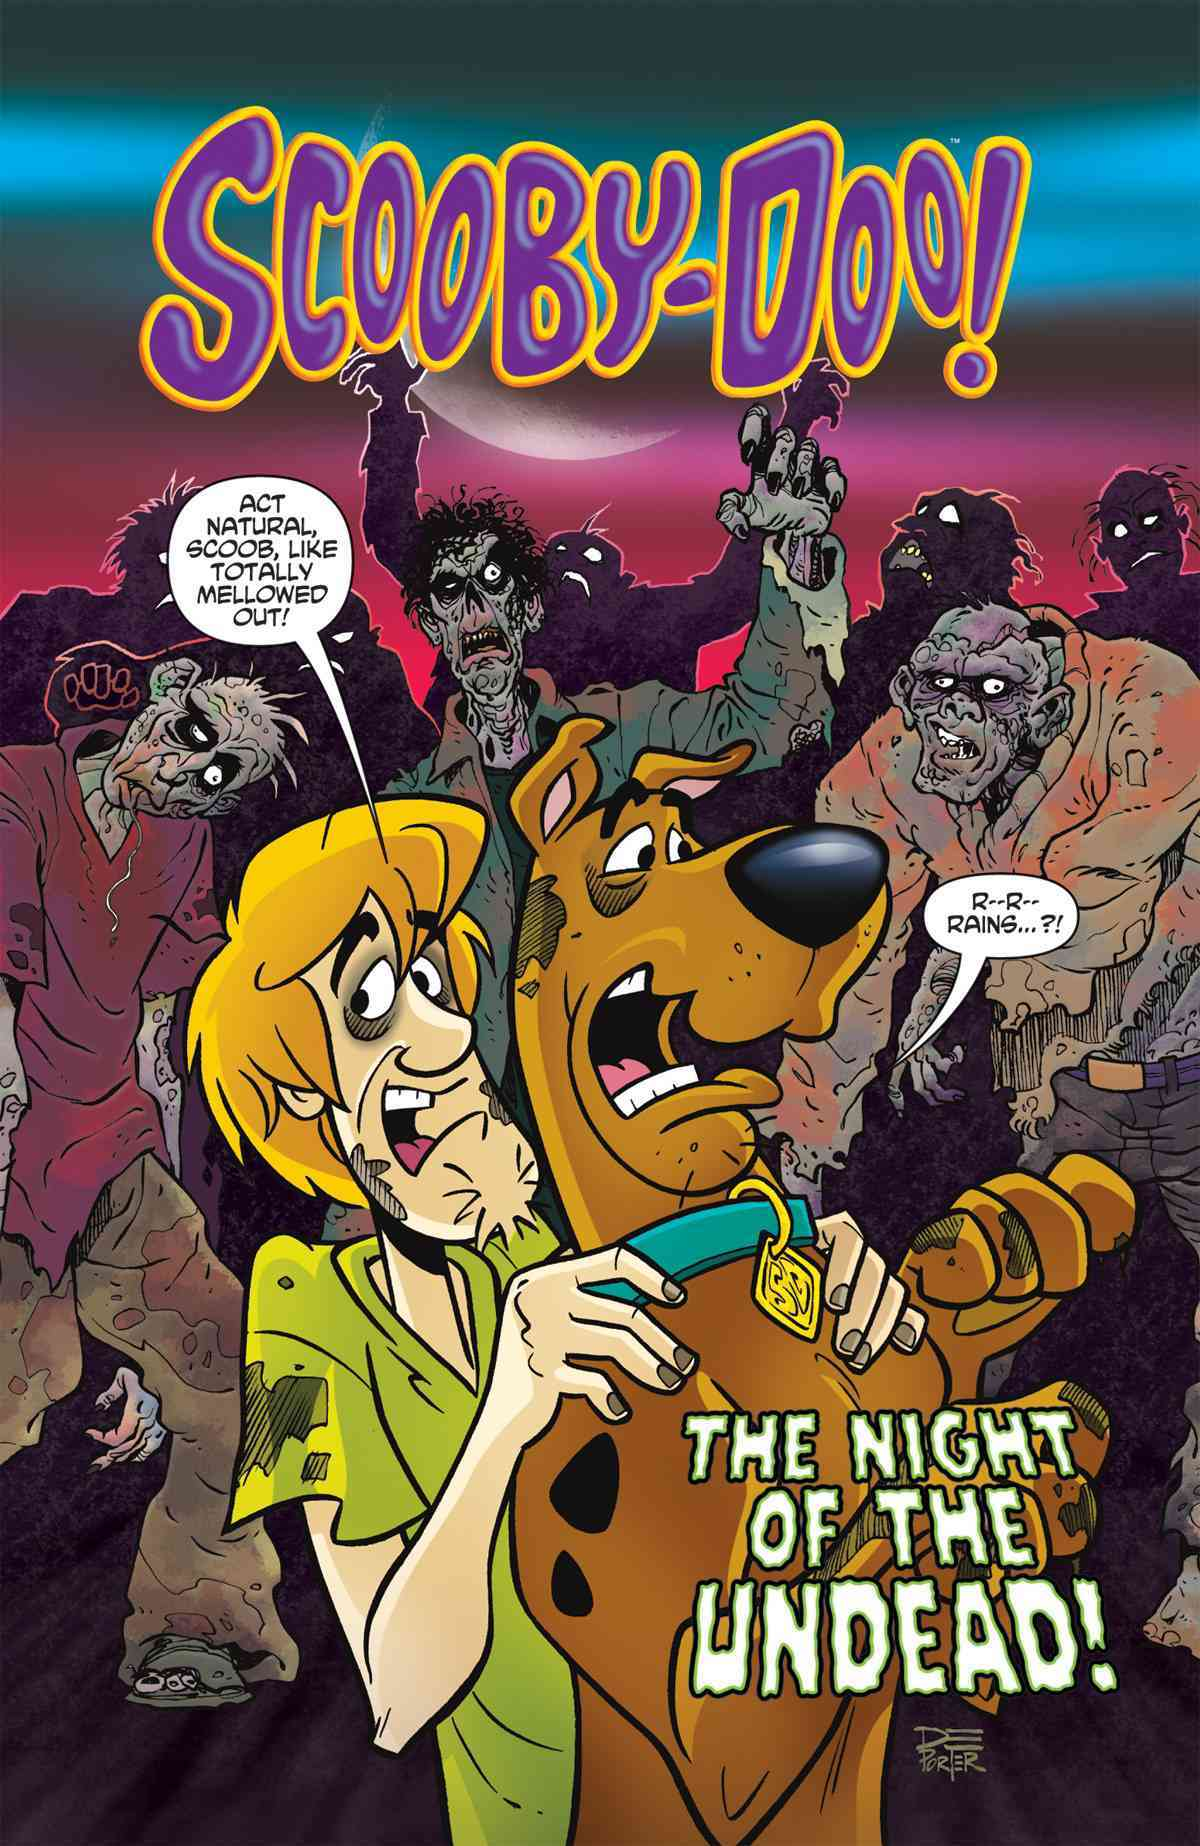 Scooby-Doo and the Night of the Undead! By Kupperberg, Paul